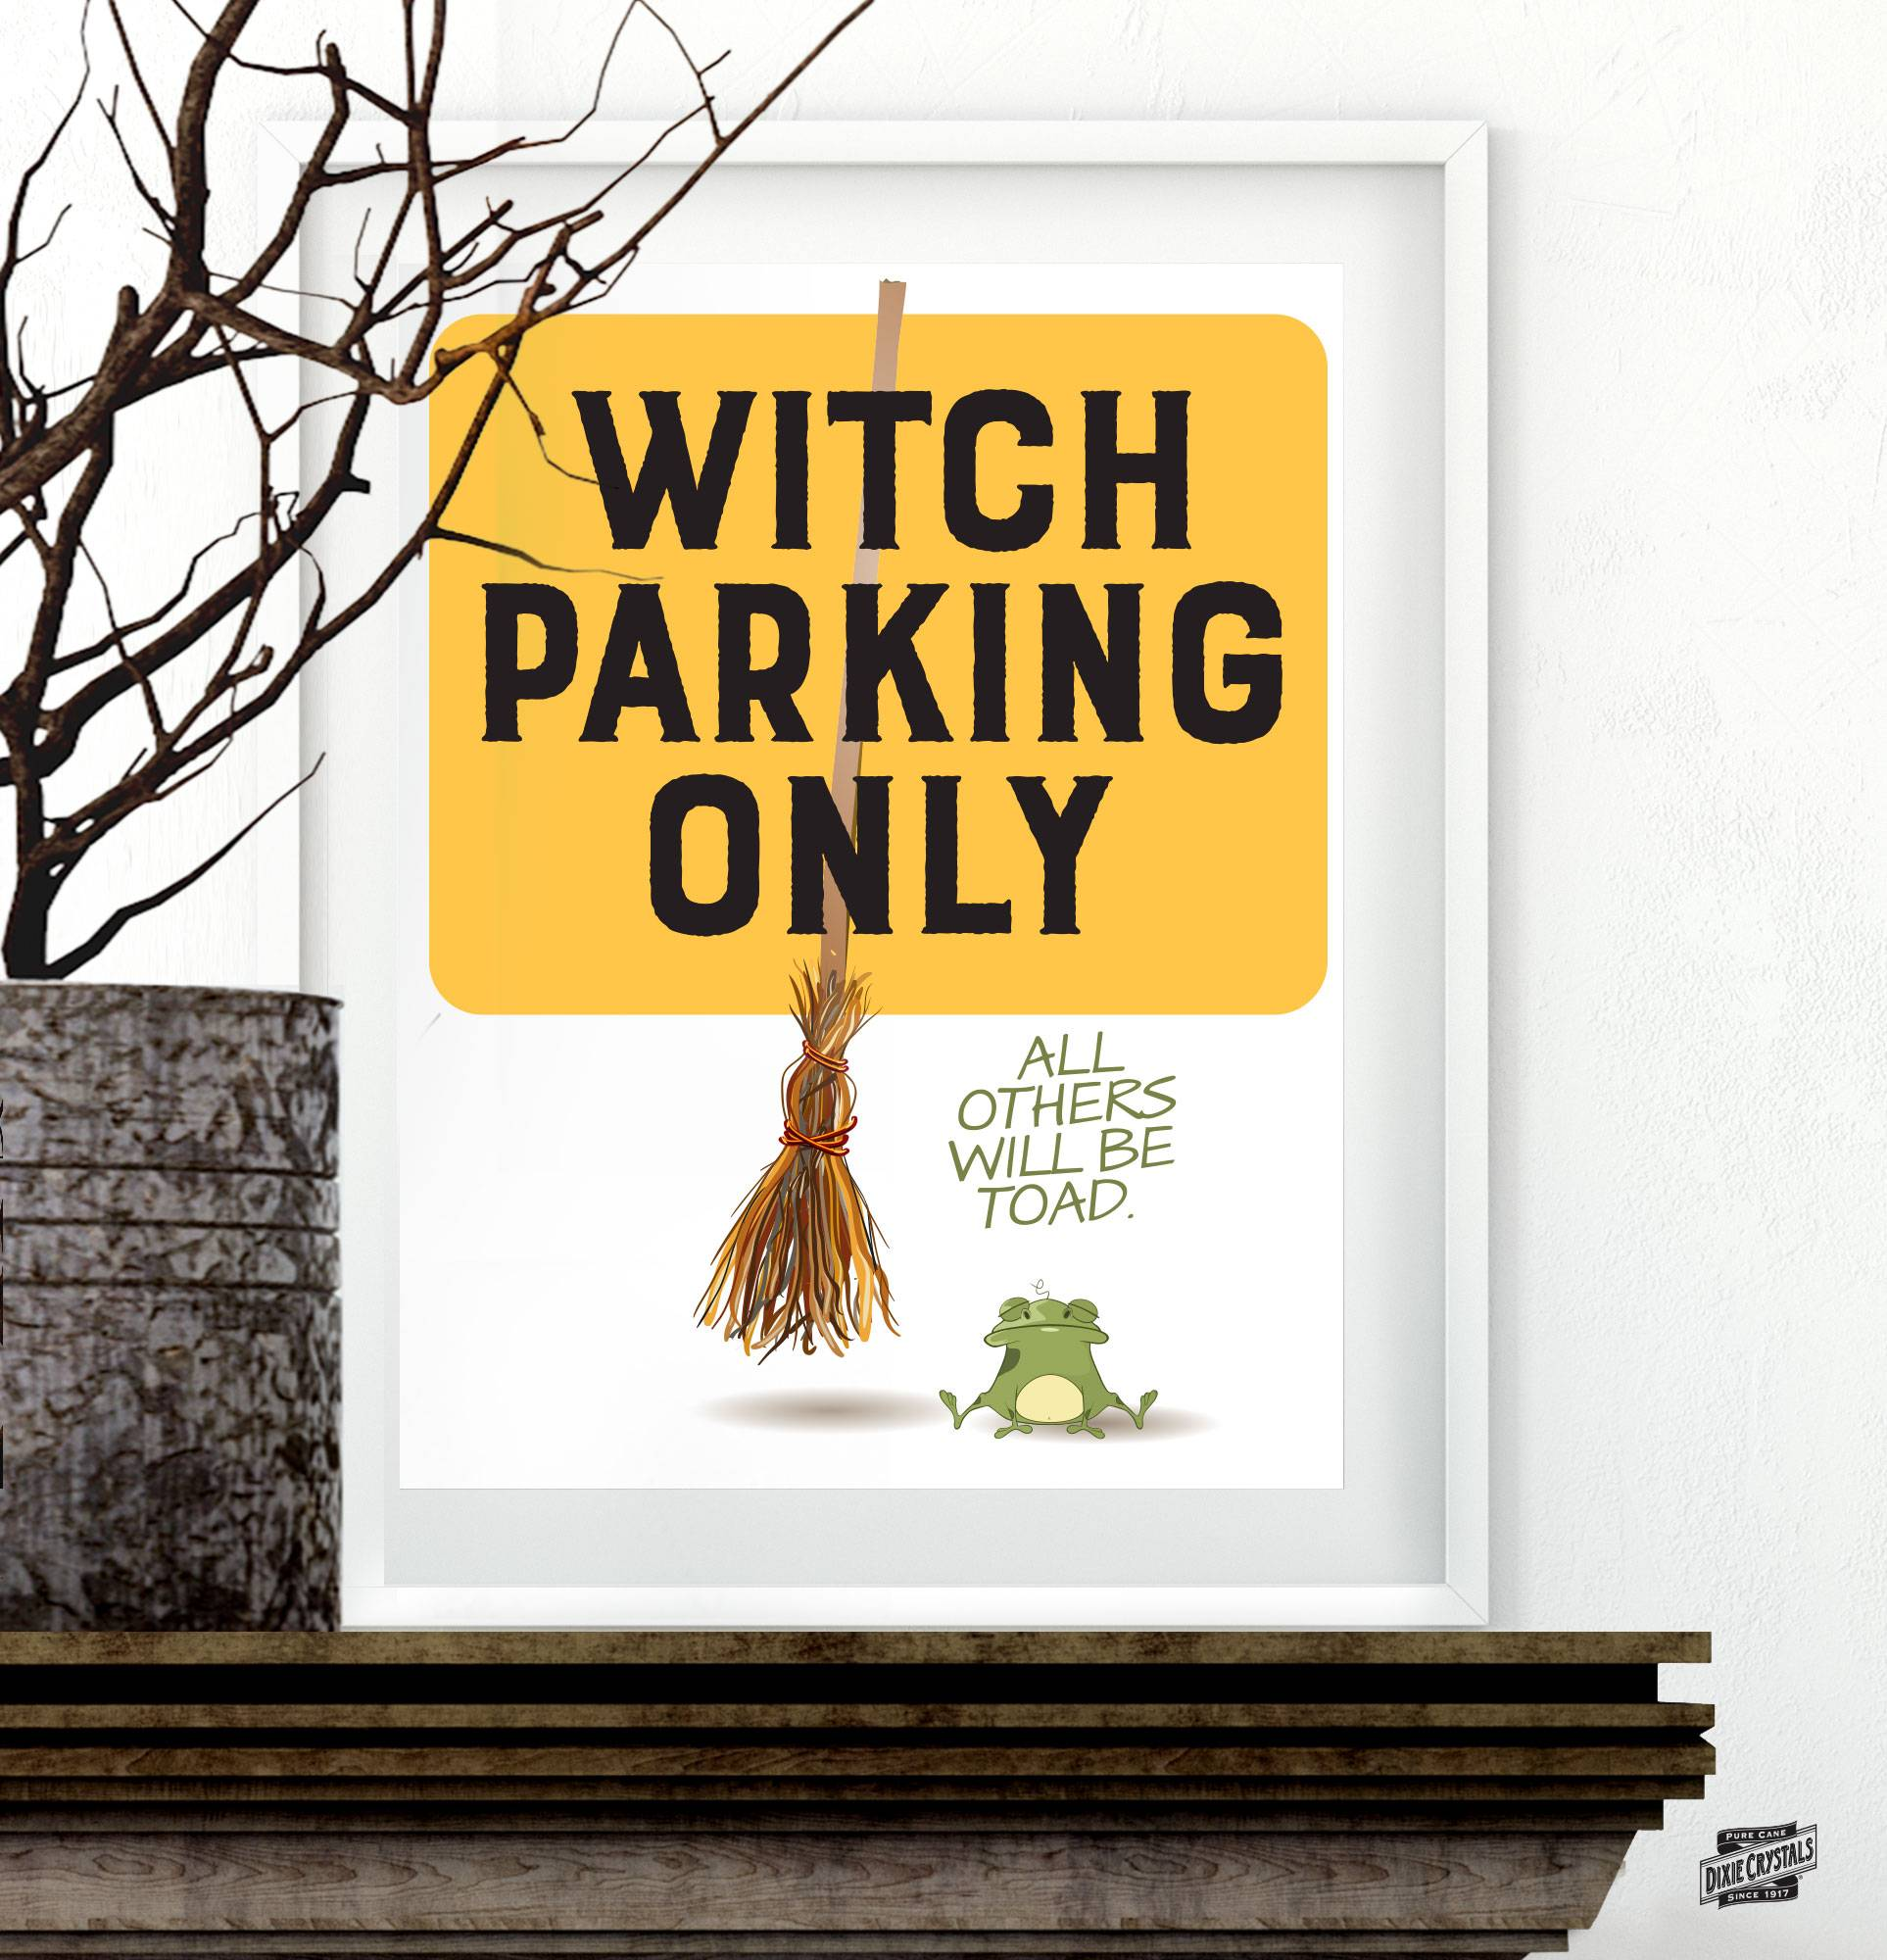 Subway Art - Witch Parking Only